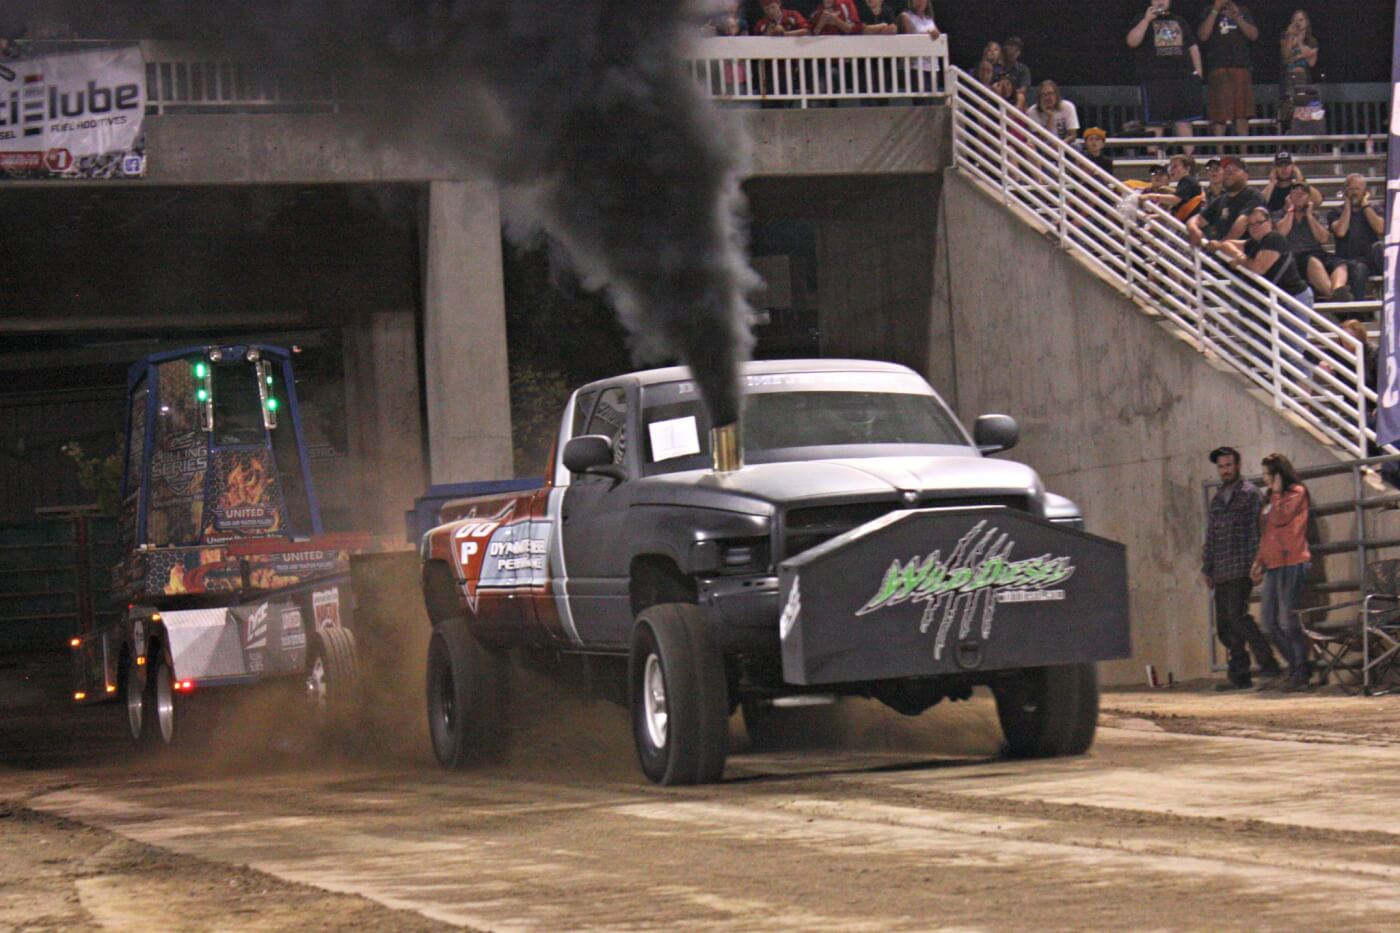 Trevor Larkin, a mechanic for nearby Wild Diesel, runs this big dually 12V Cummins in the 3.0 Inducer class. His 272.28-foot pull snagged third place, just 4 feet shy of the winner.